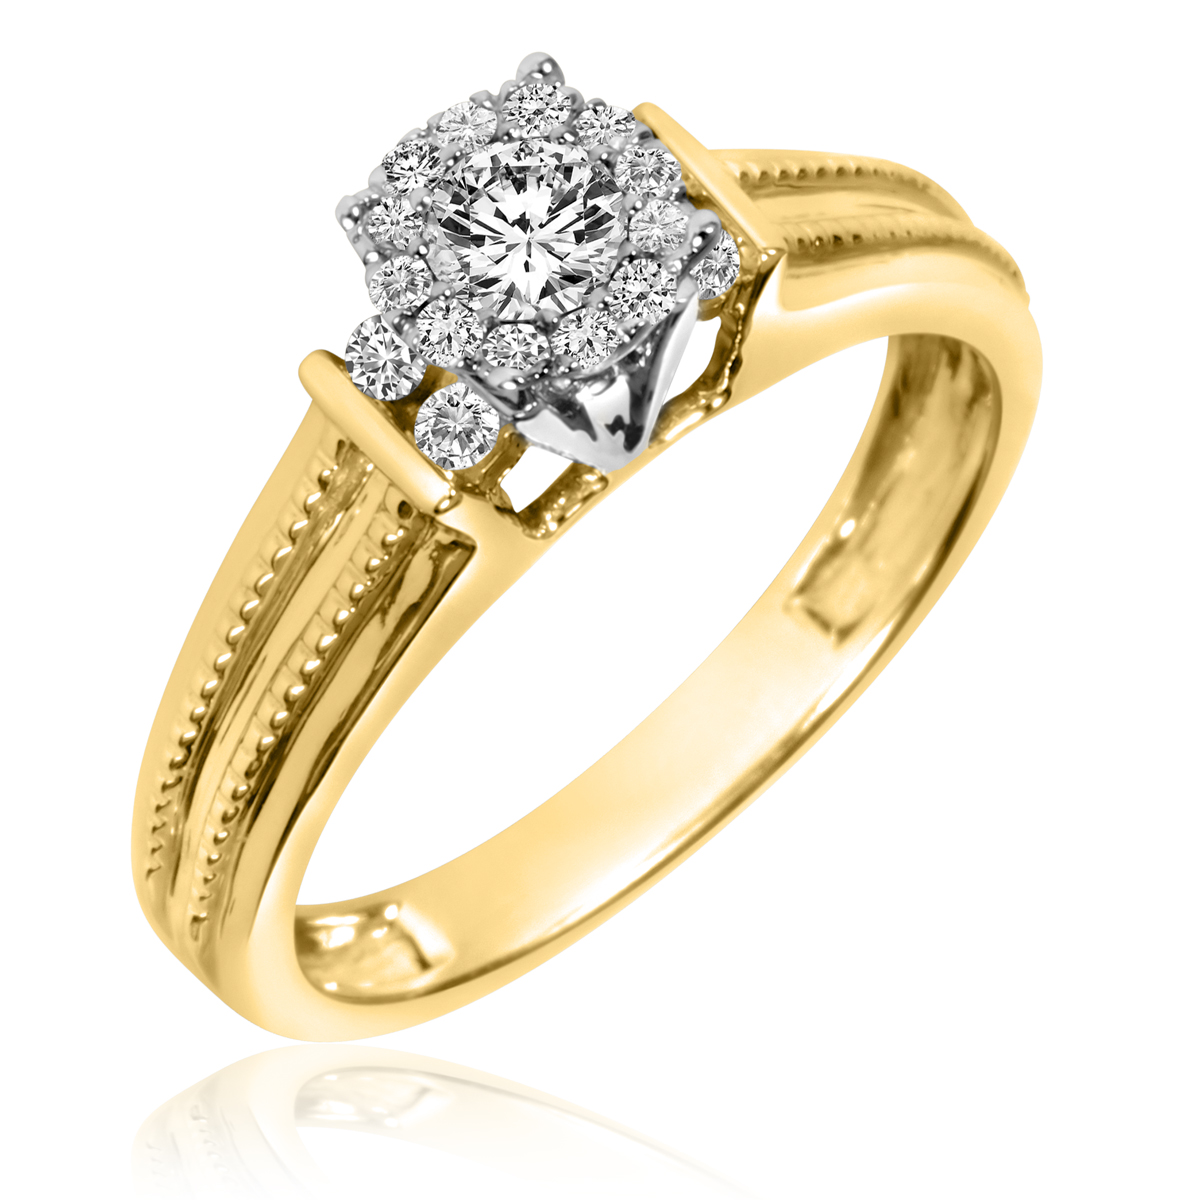 3/8 Carat T.W. Round Cut Diamond Ladies Engagement Ring 14K Yellow Gold- Size 8